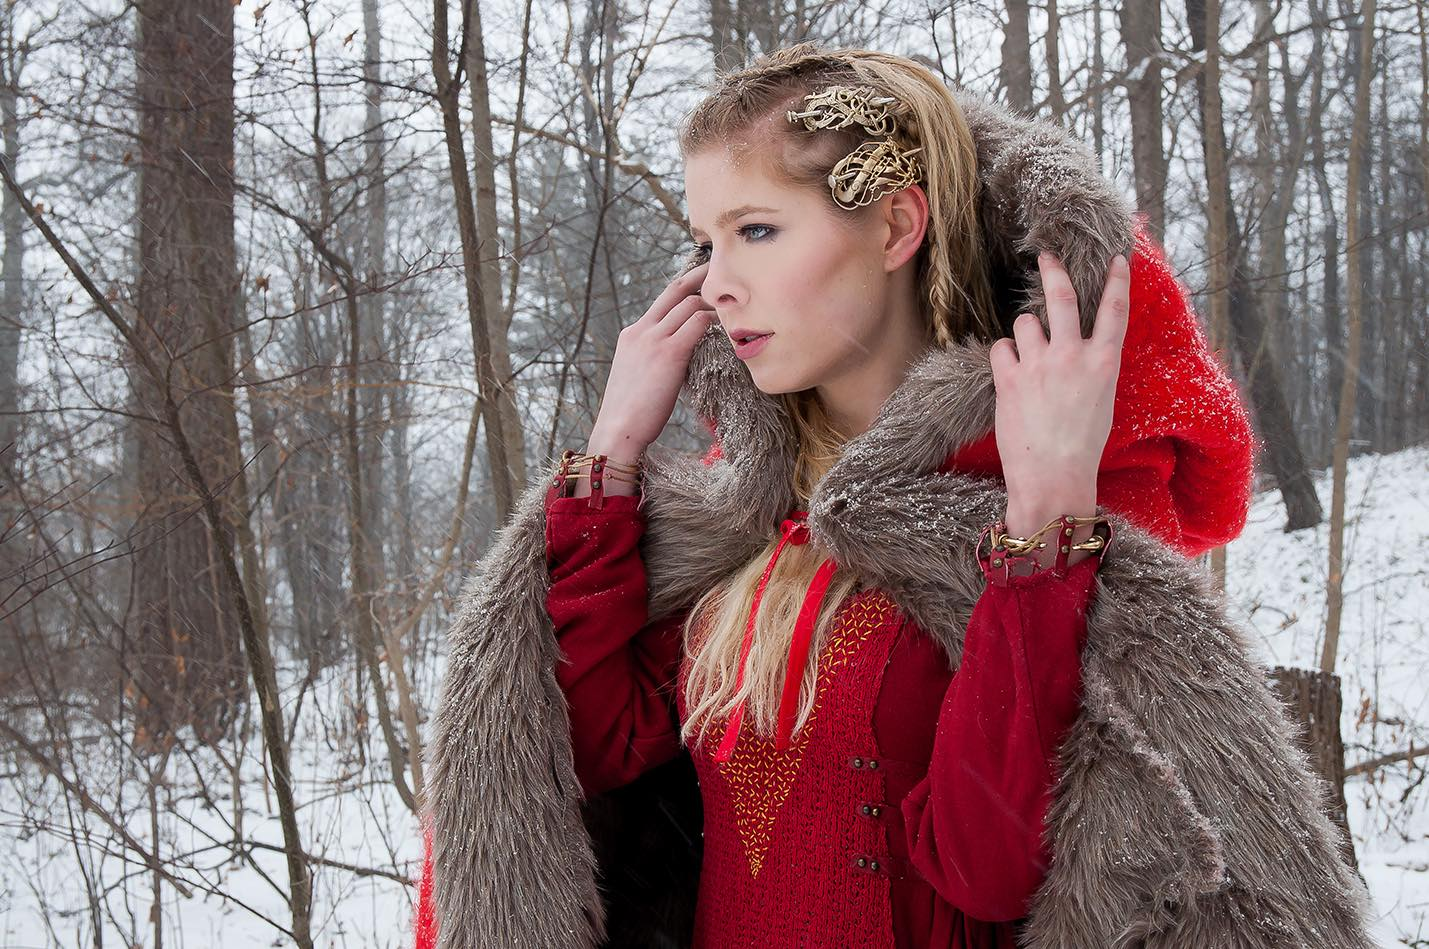 Creating Viking Age Clothing In The 21st Century